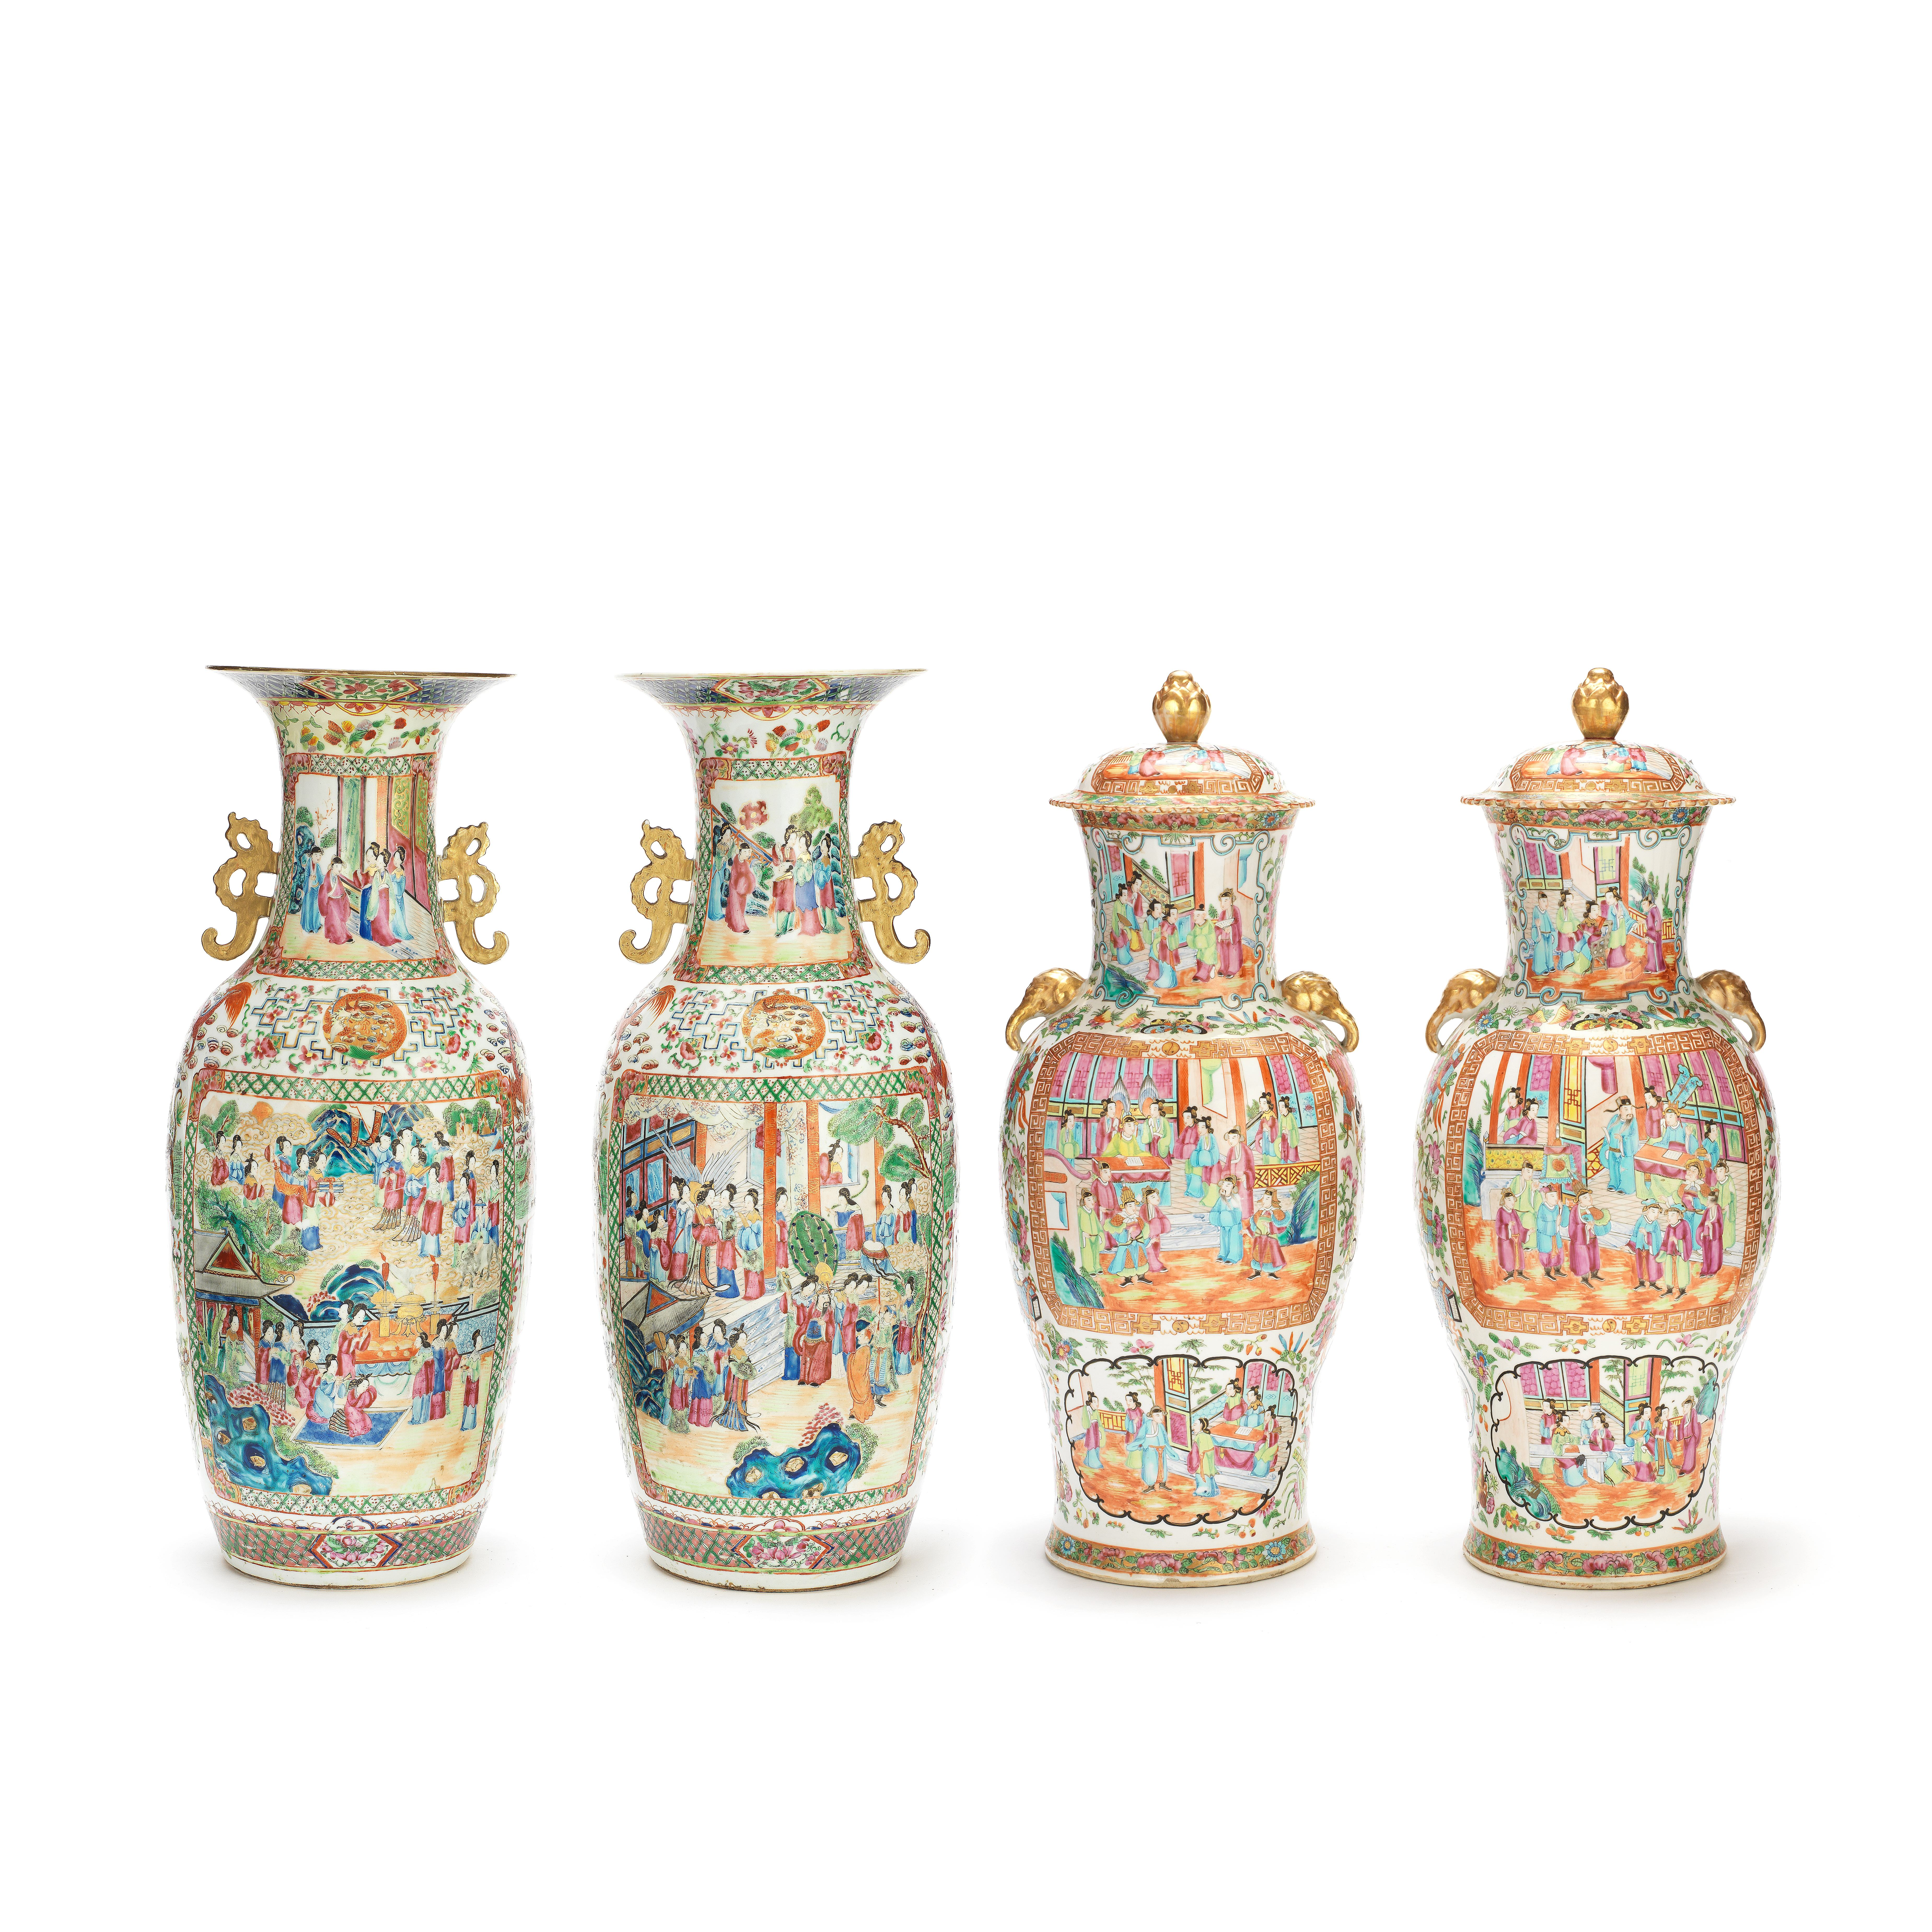 AN ASSOCIATED FOUR-PIECE CANTON FAMILLE ROSE MANTEL PART-GARNITURE Late 19th/early 20th century (6)